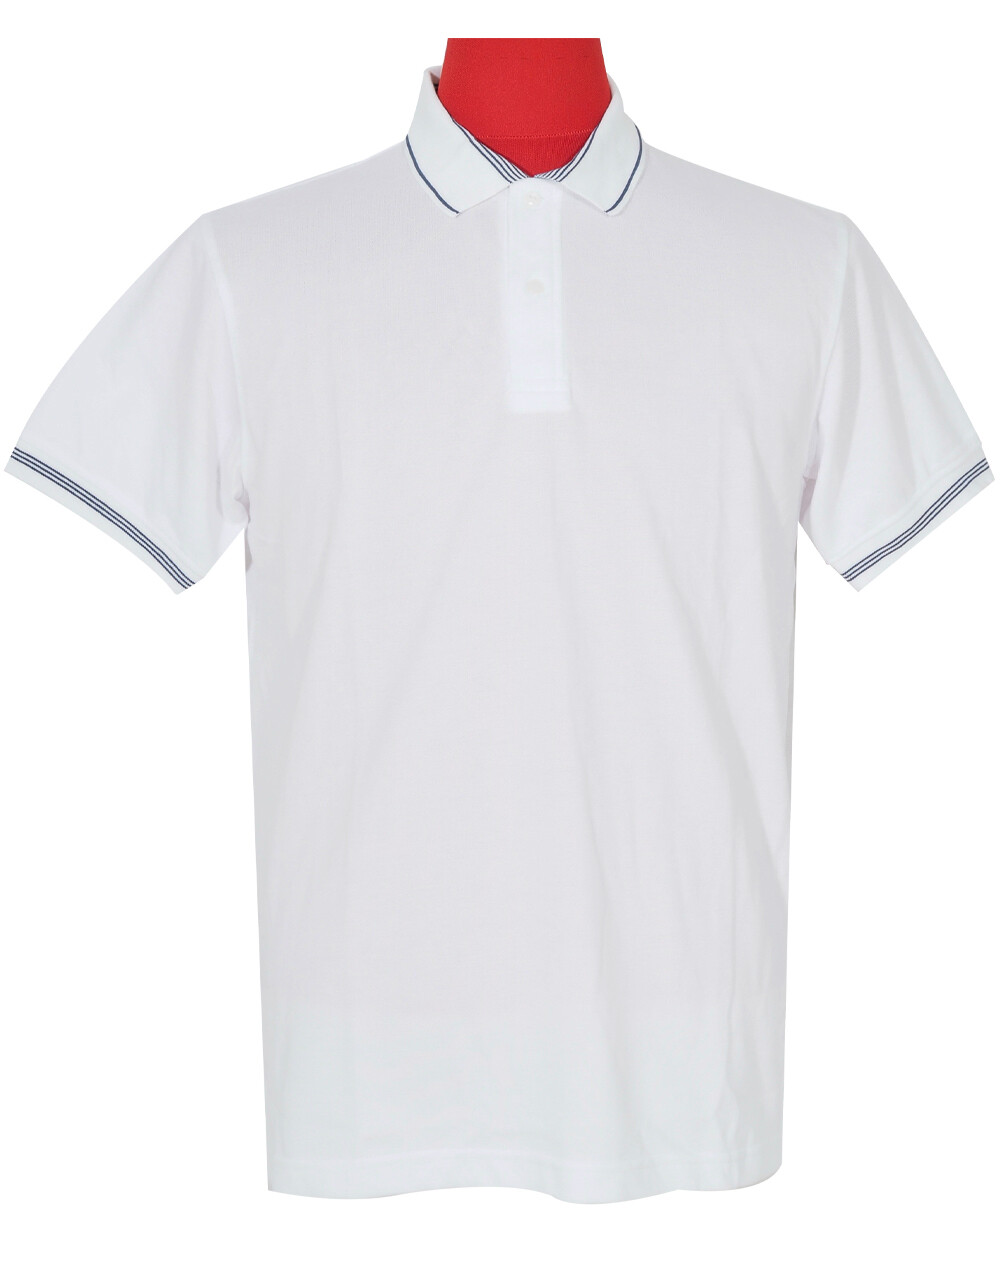 Polo Shirt Cool Plus Fabric White Color.